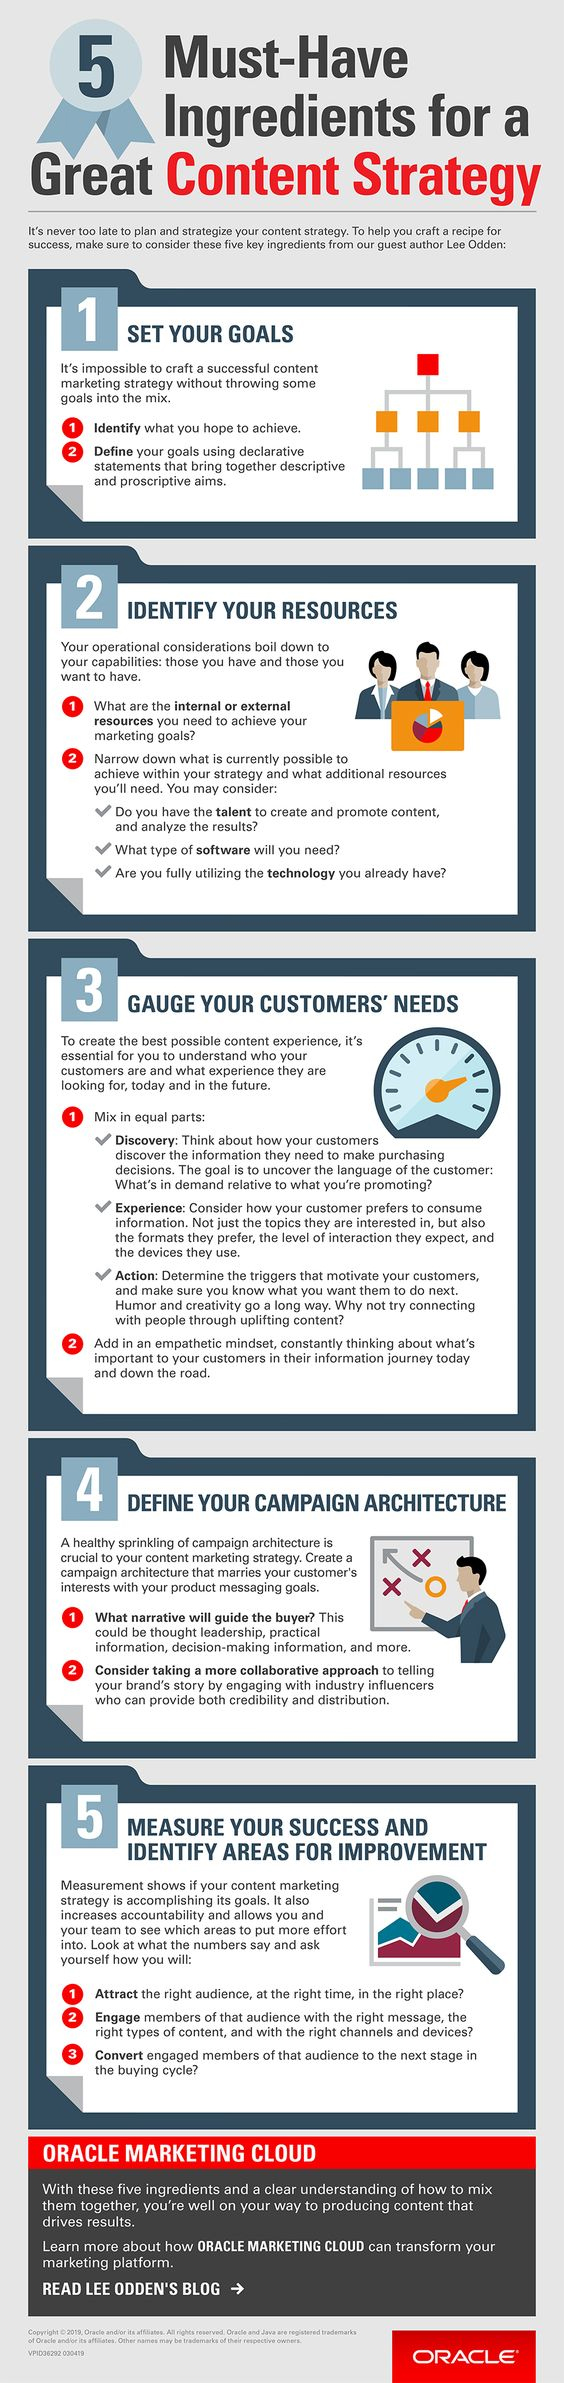 5 Crucial Ingredients for a Tremendous Content Marketing Strategy [Infographic]                      | Social Media Today